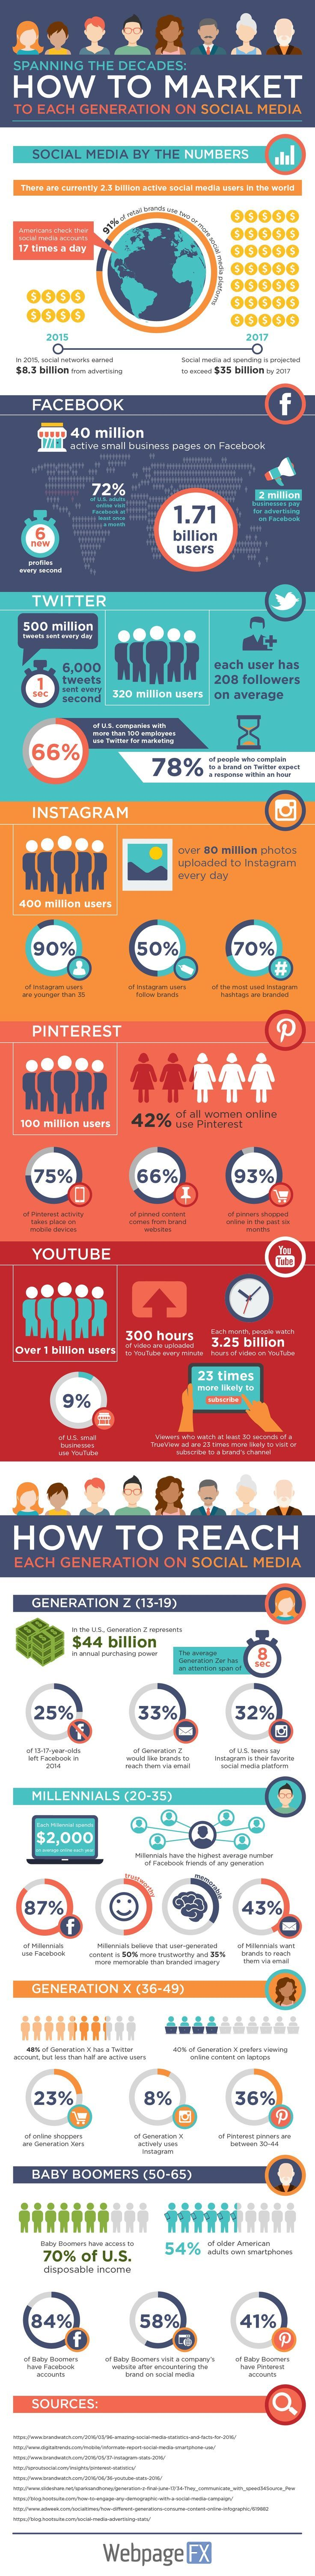 How to Market to Each Generation on Social Media #Infographic - http://marketinghits.com/blog/how-to-market-to-each-generation-on-social-media-infographic/